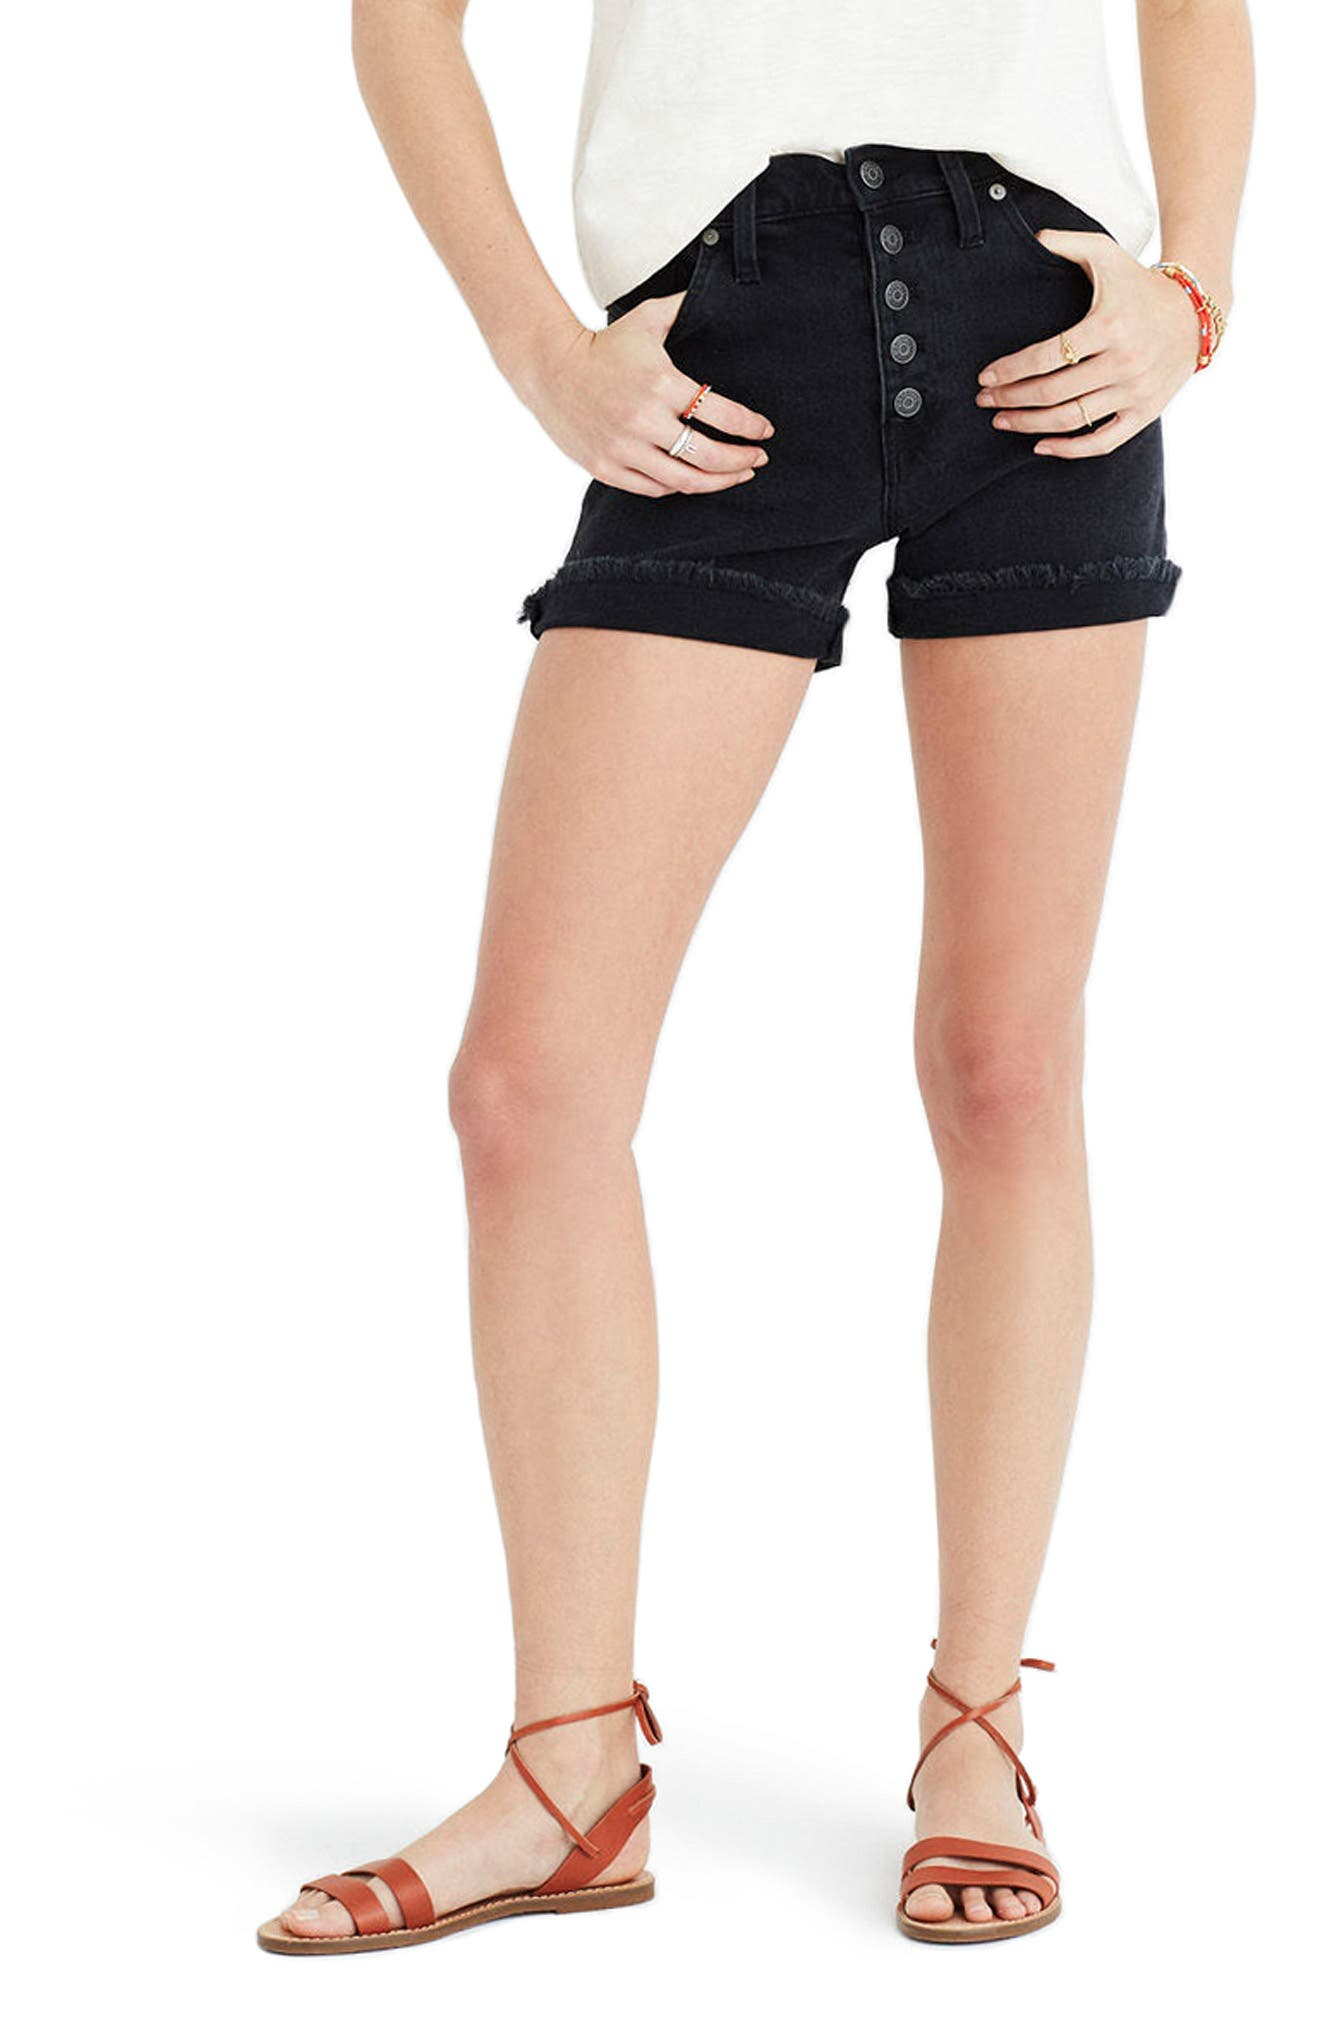 Alternate Image 1 Selected - Madewell High Rise Denim Shorts (Faded Black)